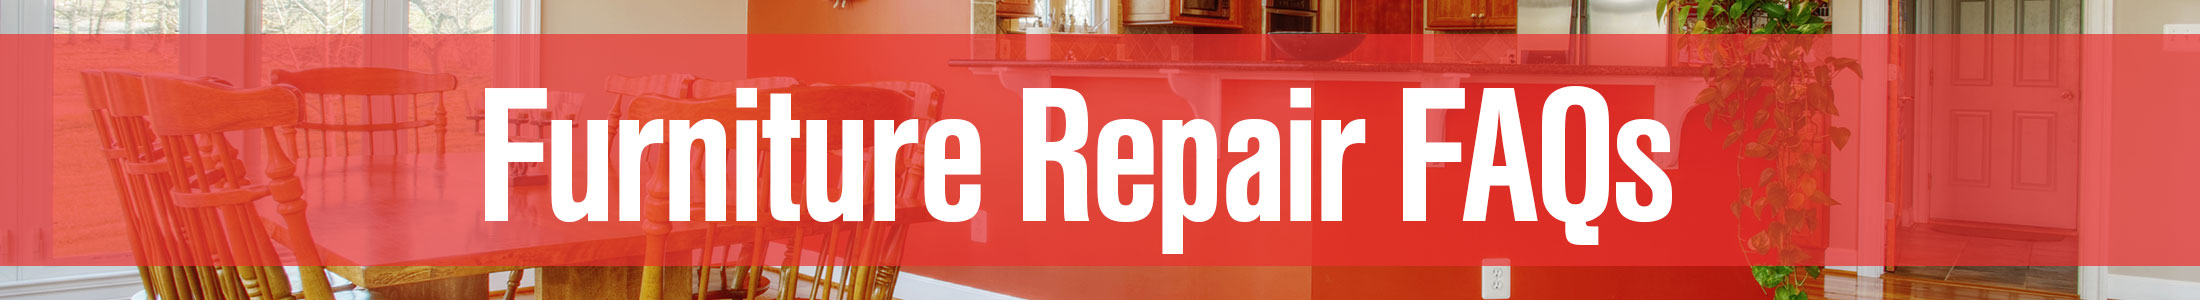 Furniture Repair FAQs